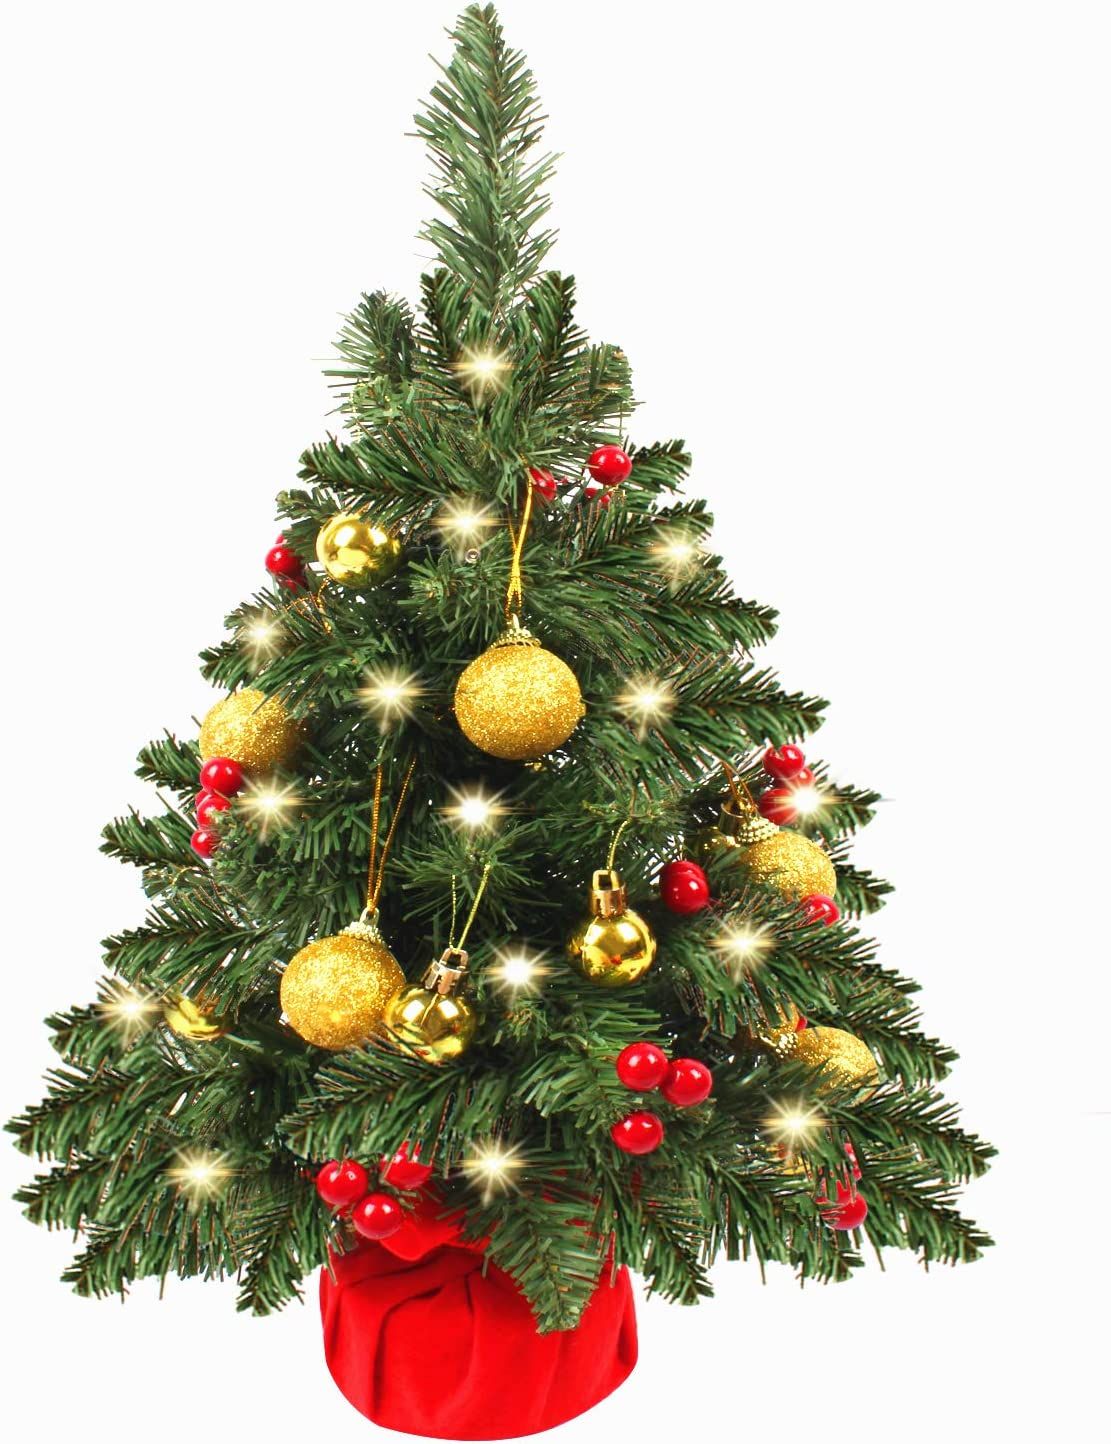 UMARDOO 21in Prelit Tabletop Christmas Tree,Small Desk Christmas Tree with Lights,Holly Berries,Ornaments Balls for Holiday Season Decorations